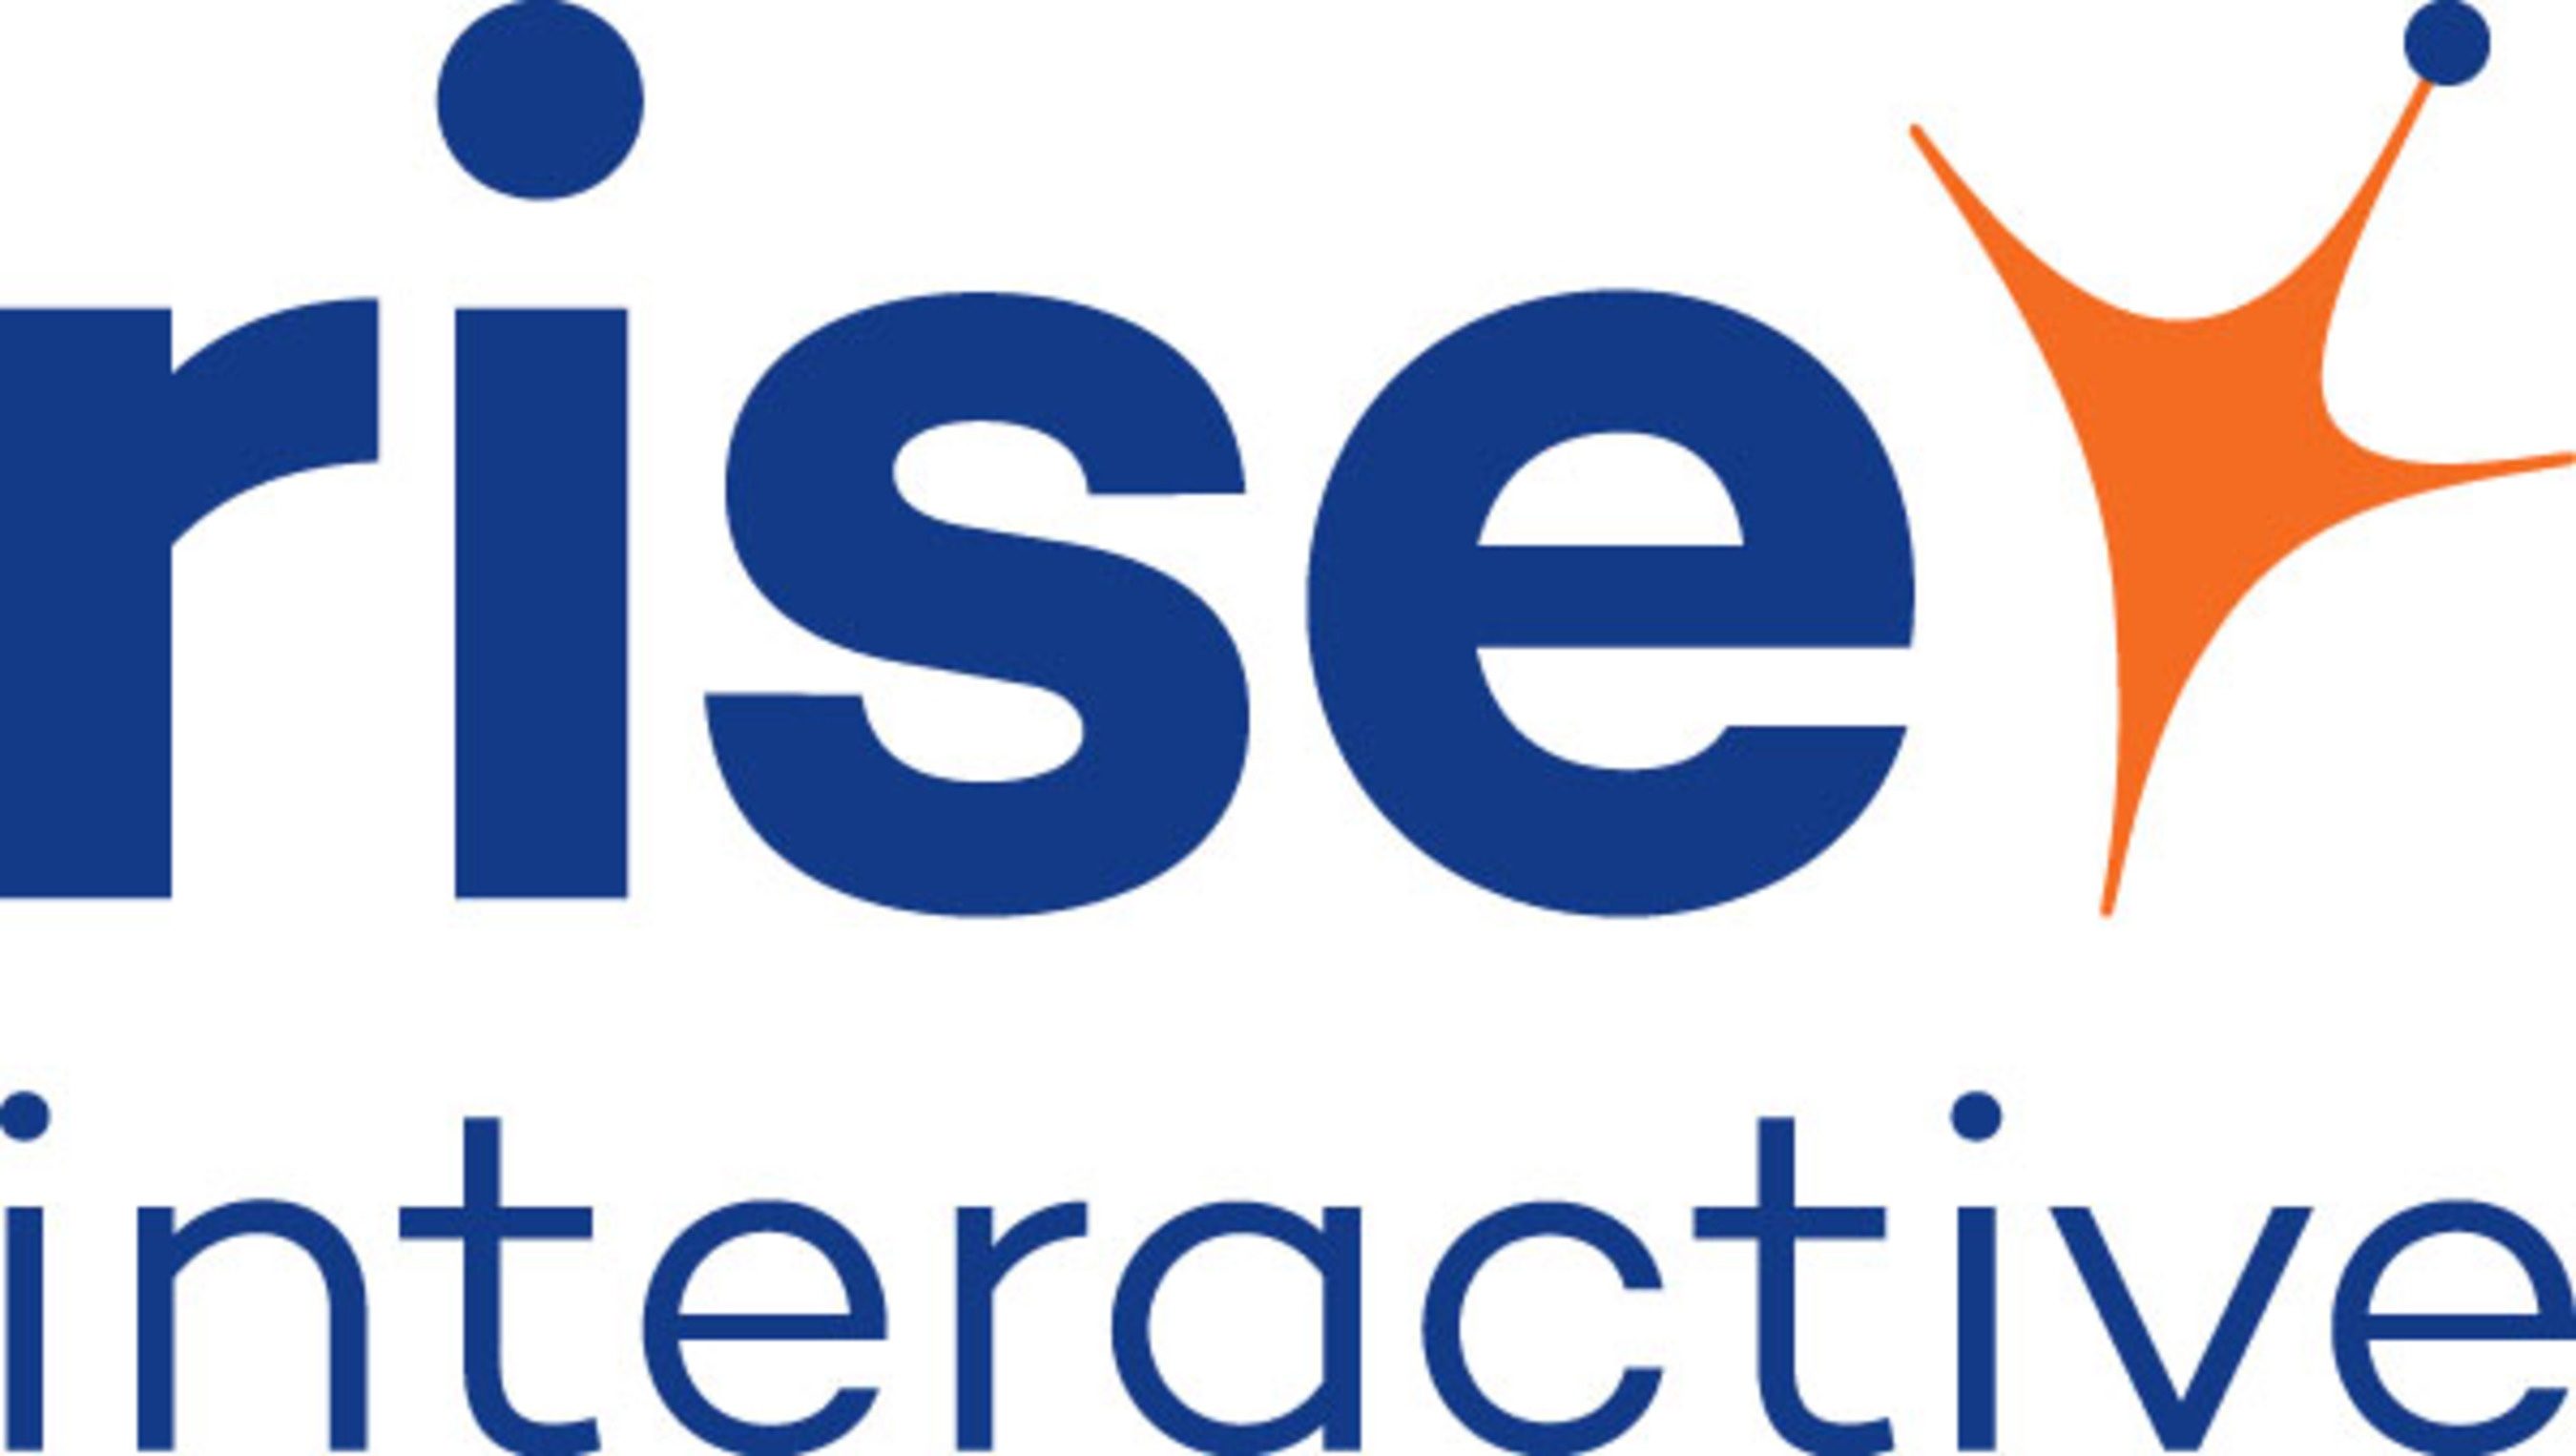 Rise Interactive is a digital marketing agency that specializes in digital media and advanced analytics. The ...